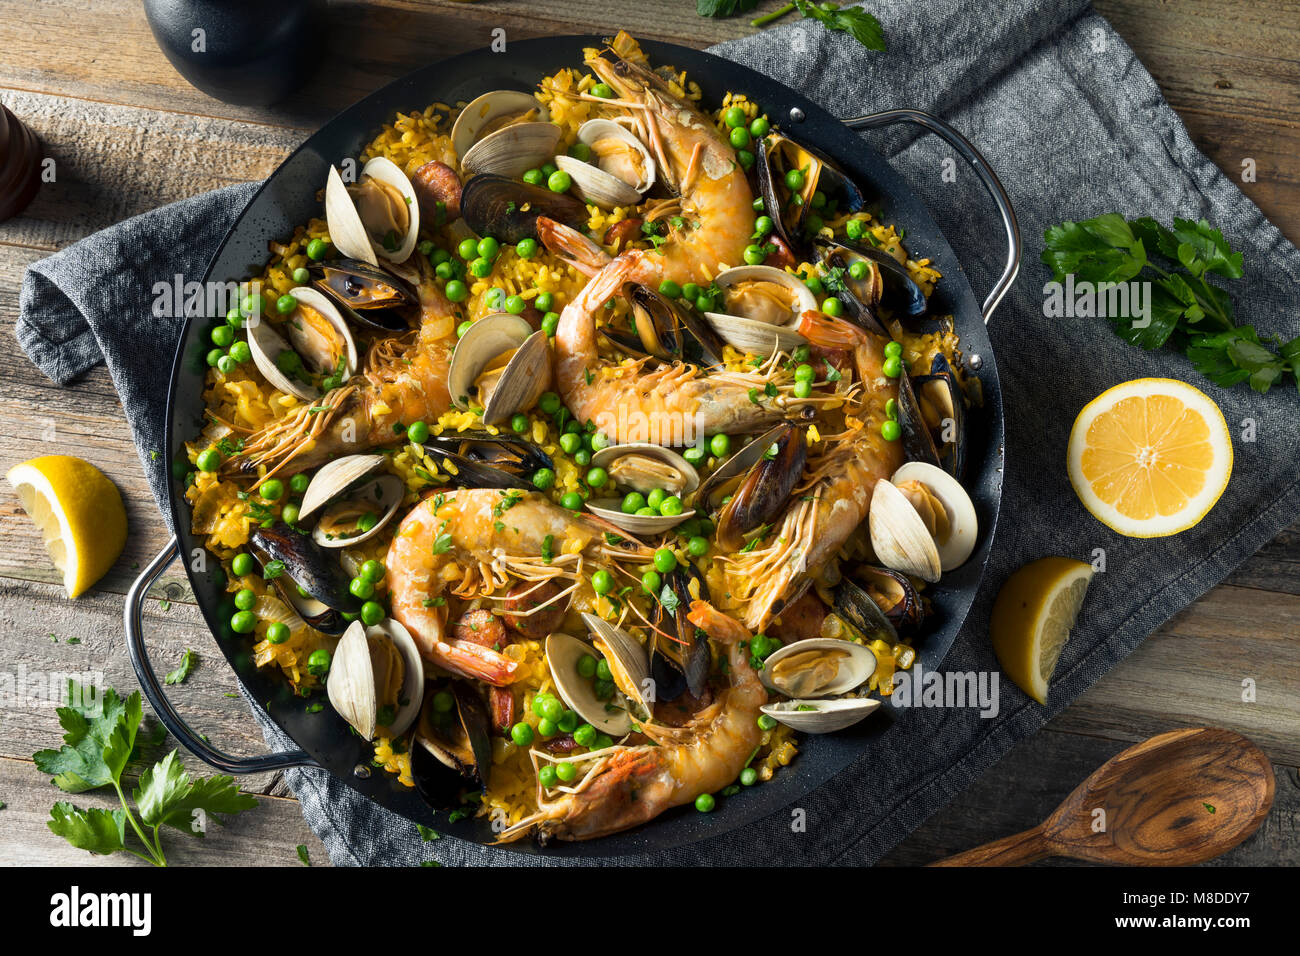 Homemade Spanish Seafood Paella with Prawns Mussels and Clams Stock Photo